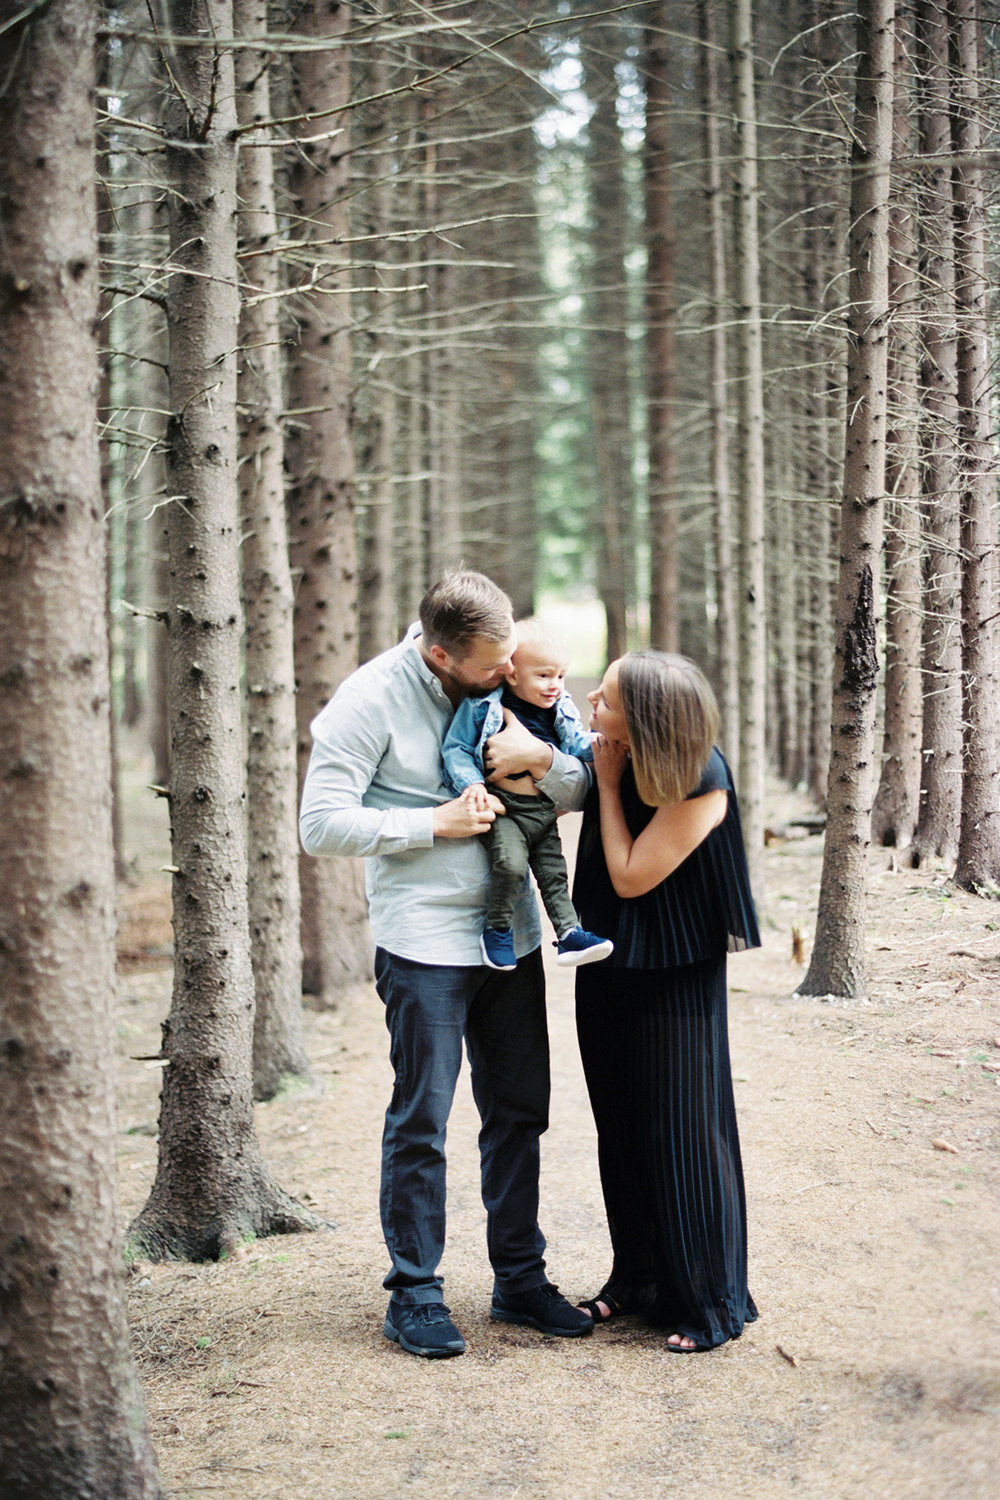 Family Shoot in A Forest in Vantaa